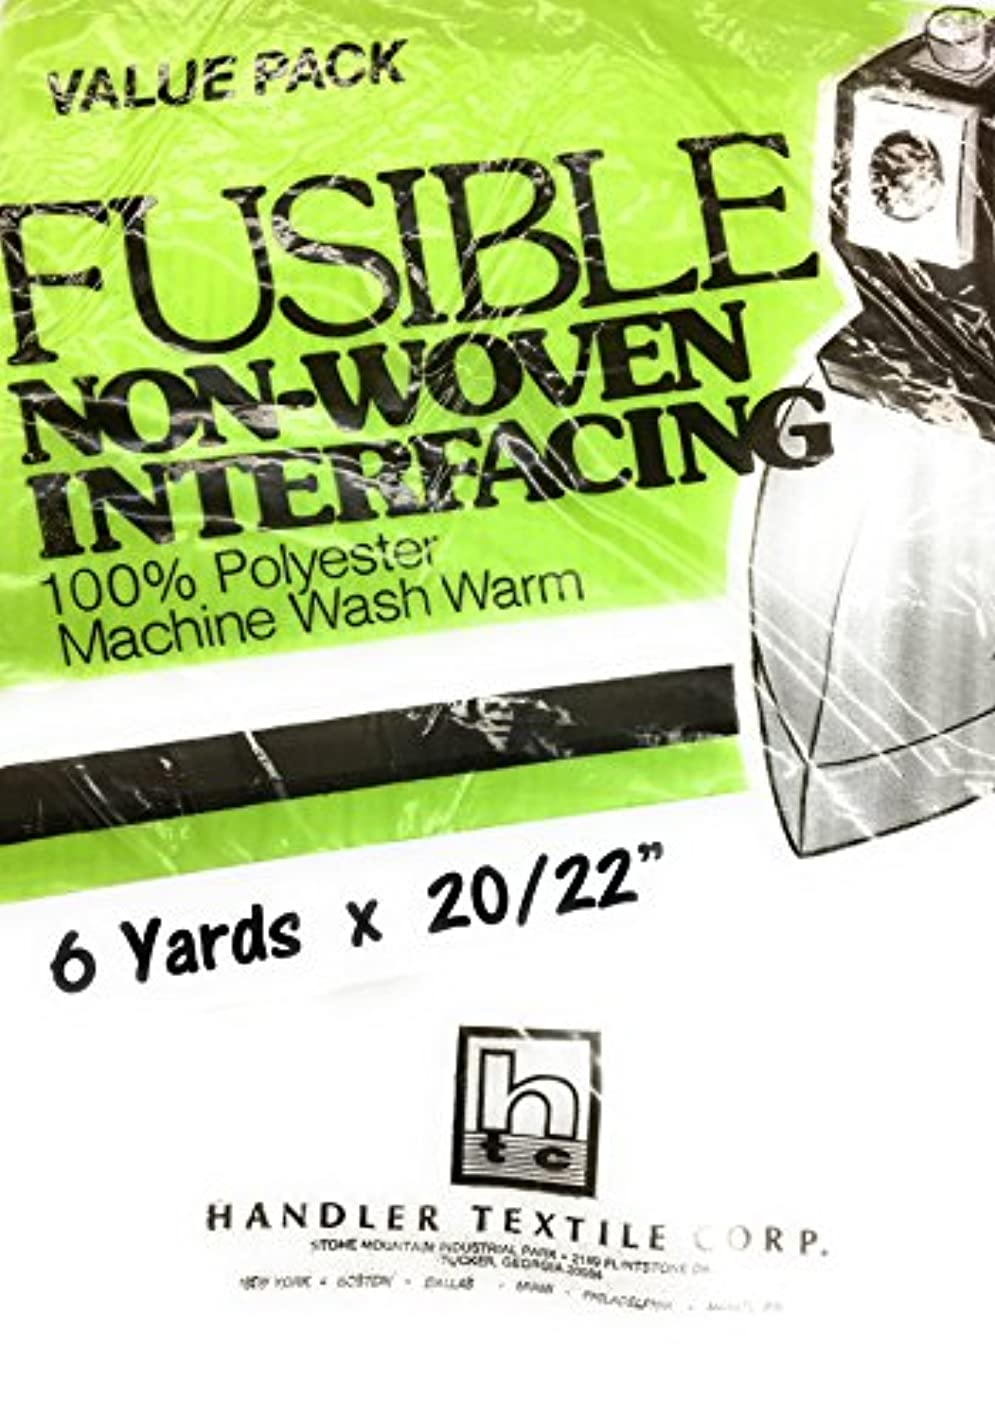 White NON WOVEN FUSIBLE INTRFACING Med. Weight , 6 yards x 22 ptcuvnftovq287